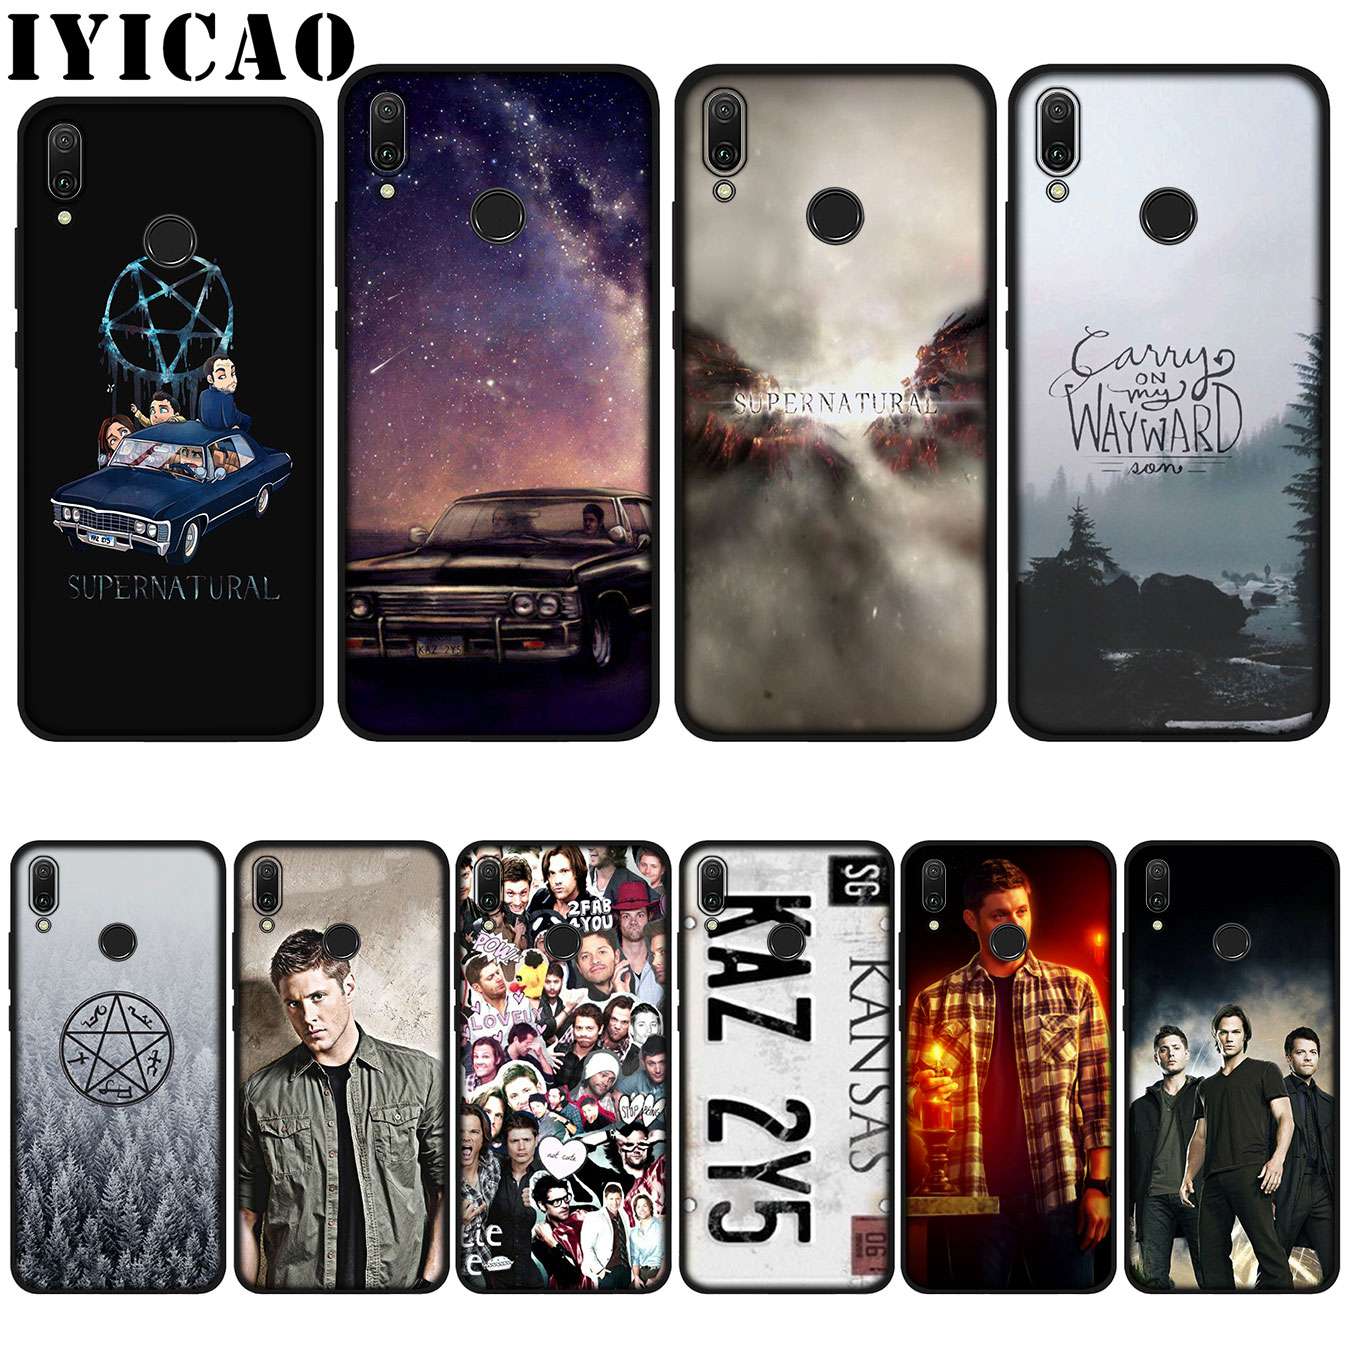 IYICAO Supernatural Jared Padalecki Soft Case for Huawei P20 Pro P10 P8 P9 P30 Lite Mini 2017 P Smart 2019 Cover image